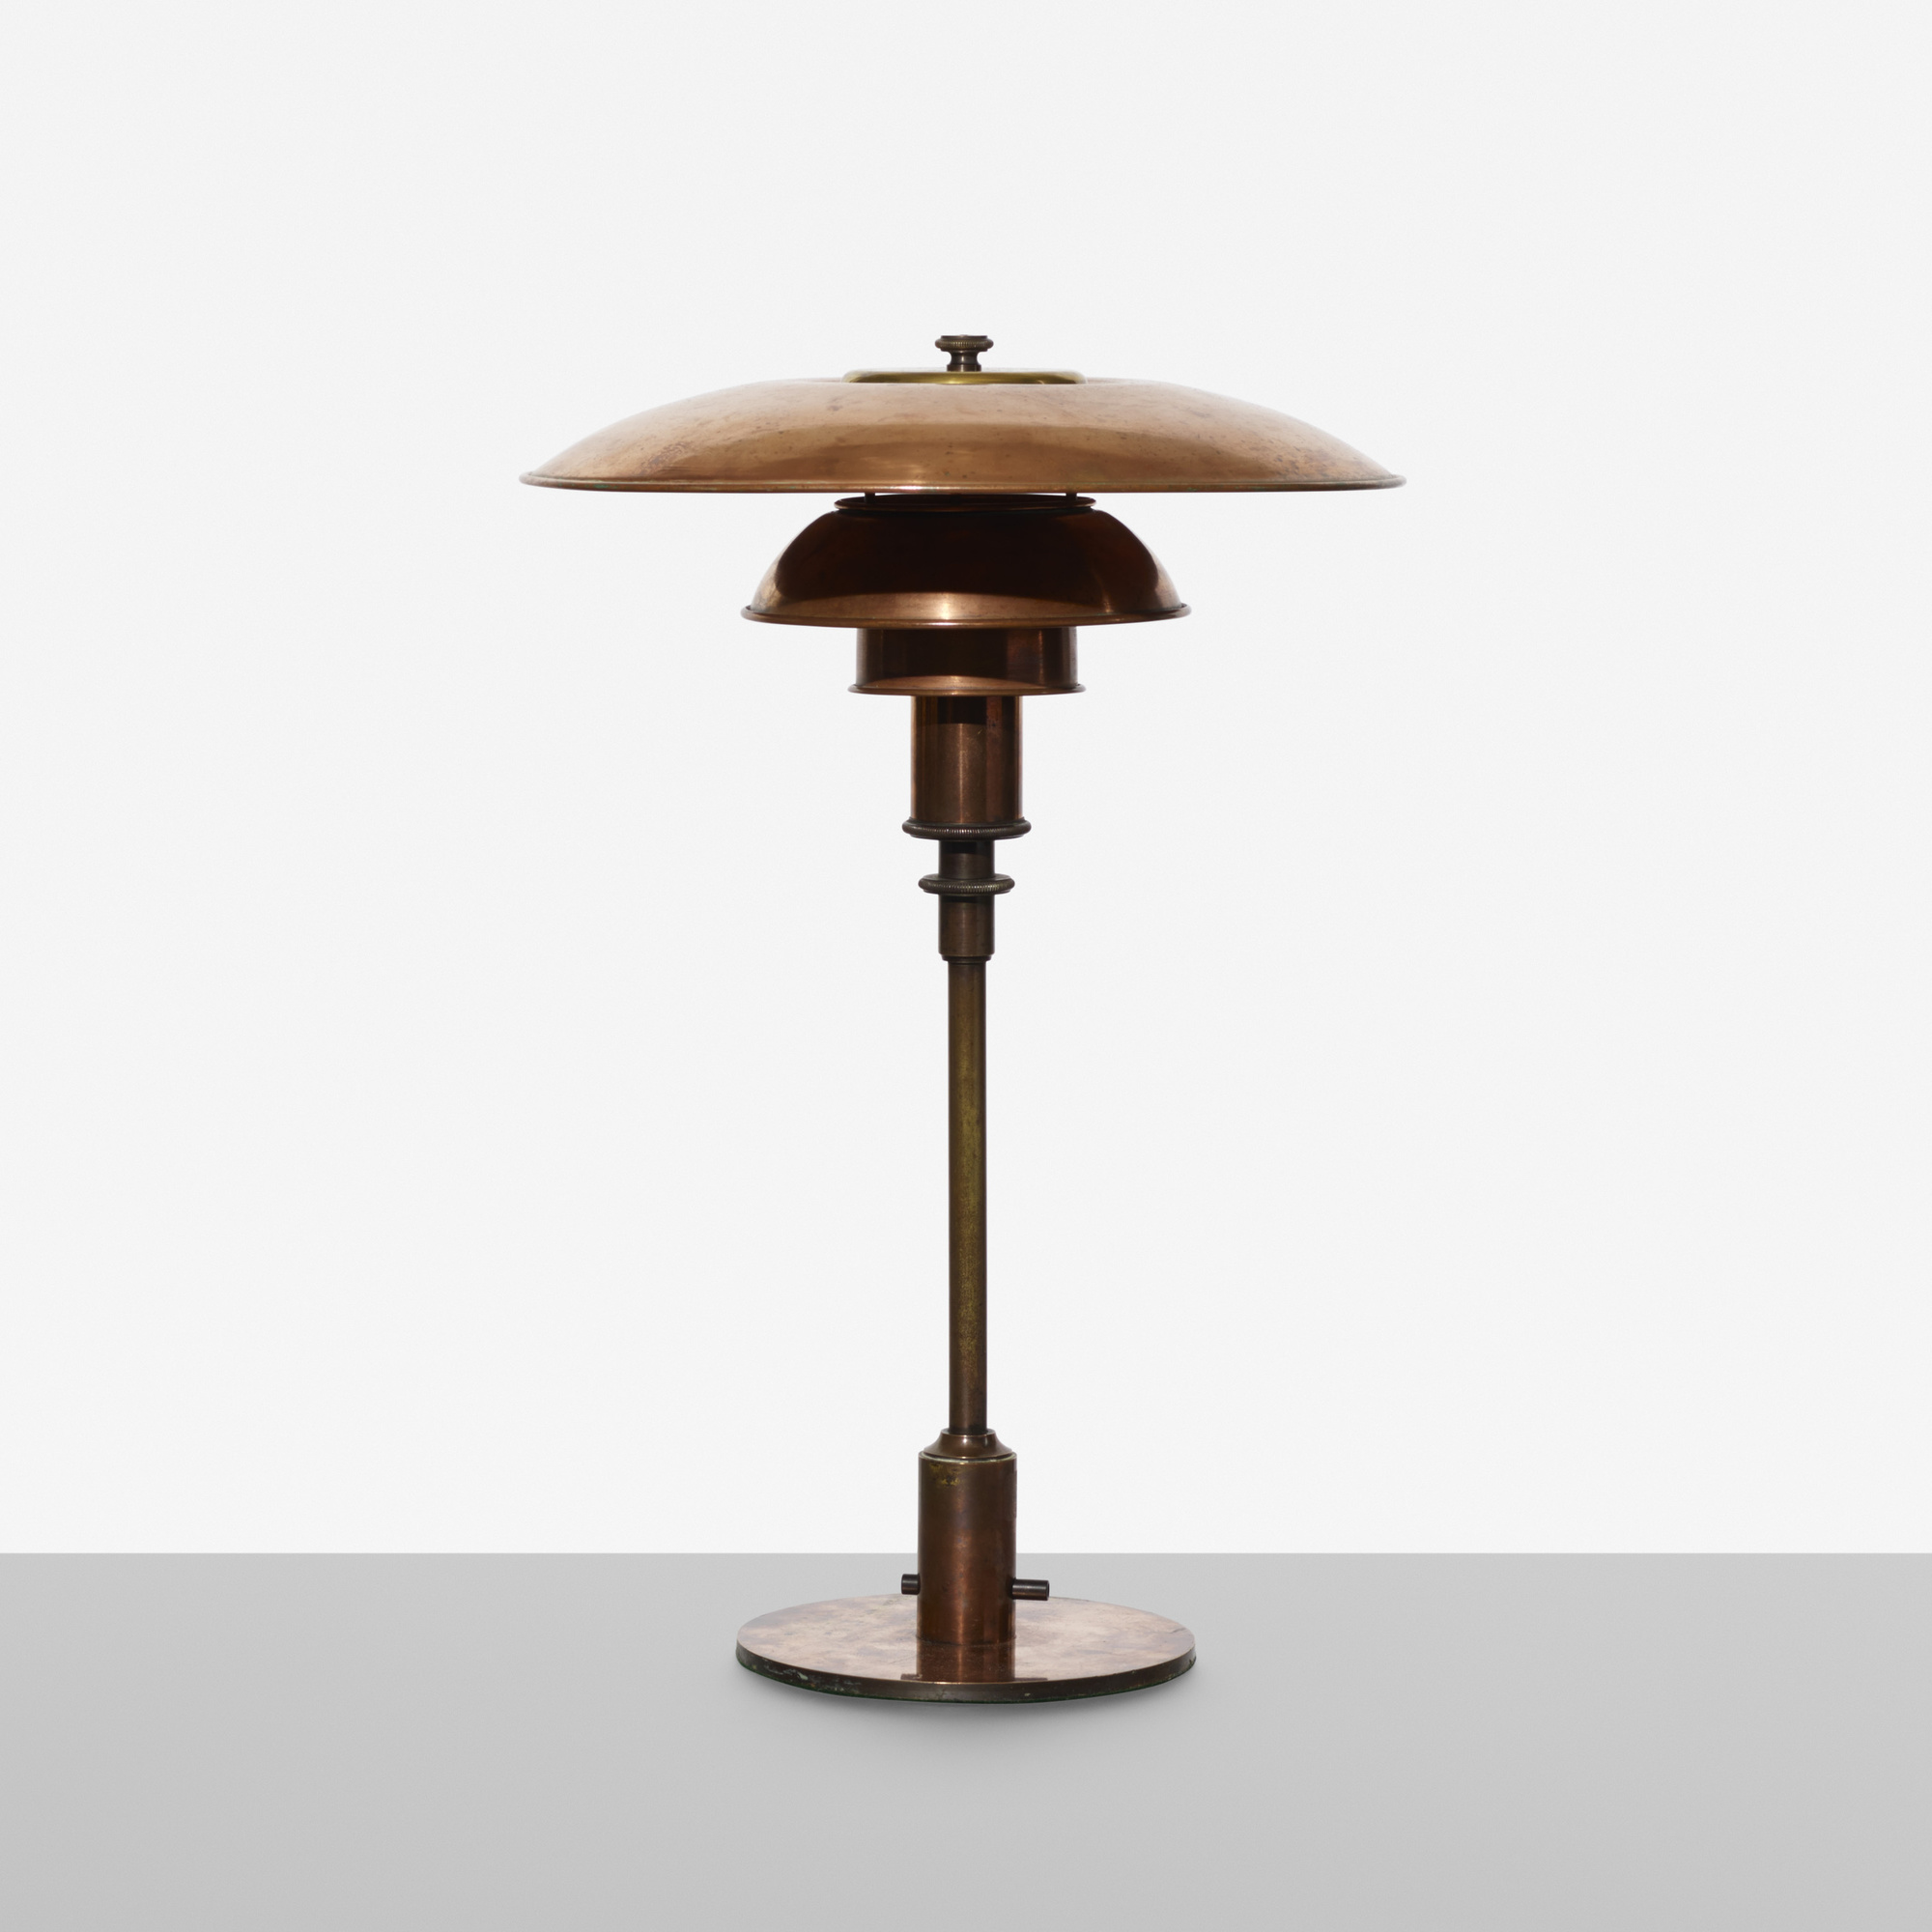 285: Poul Henningsen / PH 3/2 table lamp (1 of 2)